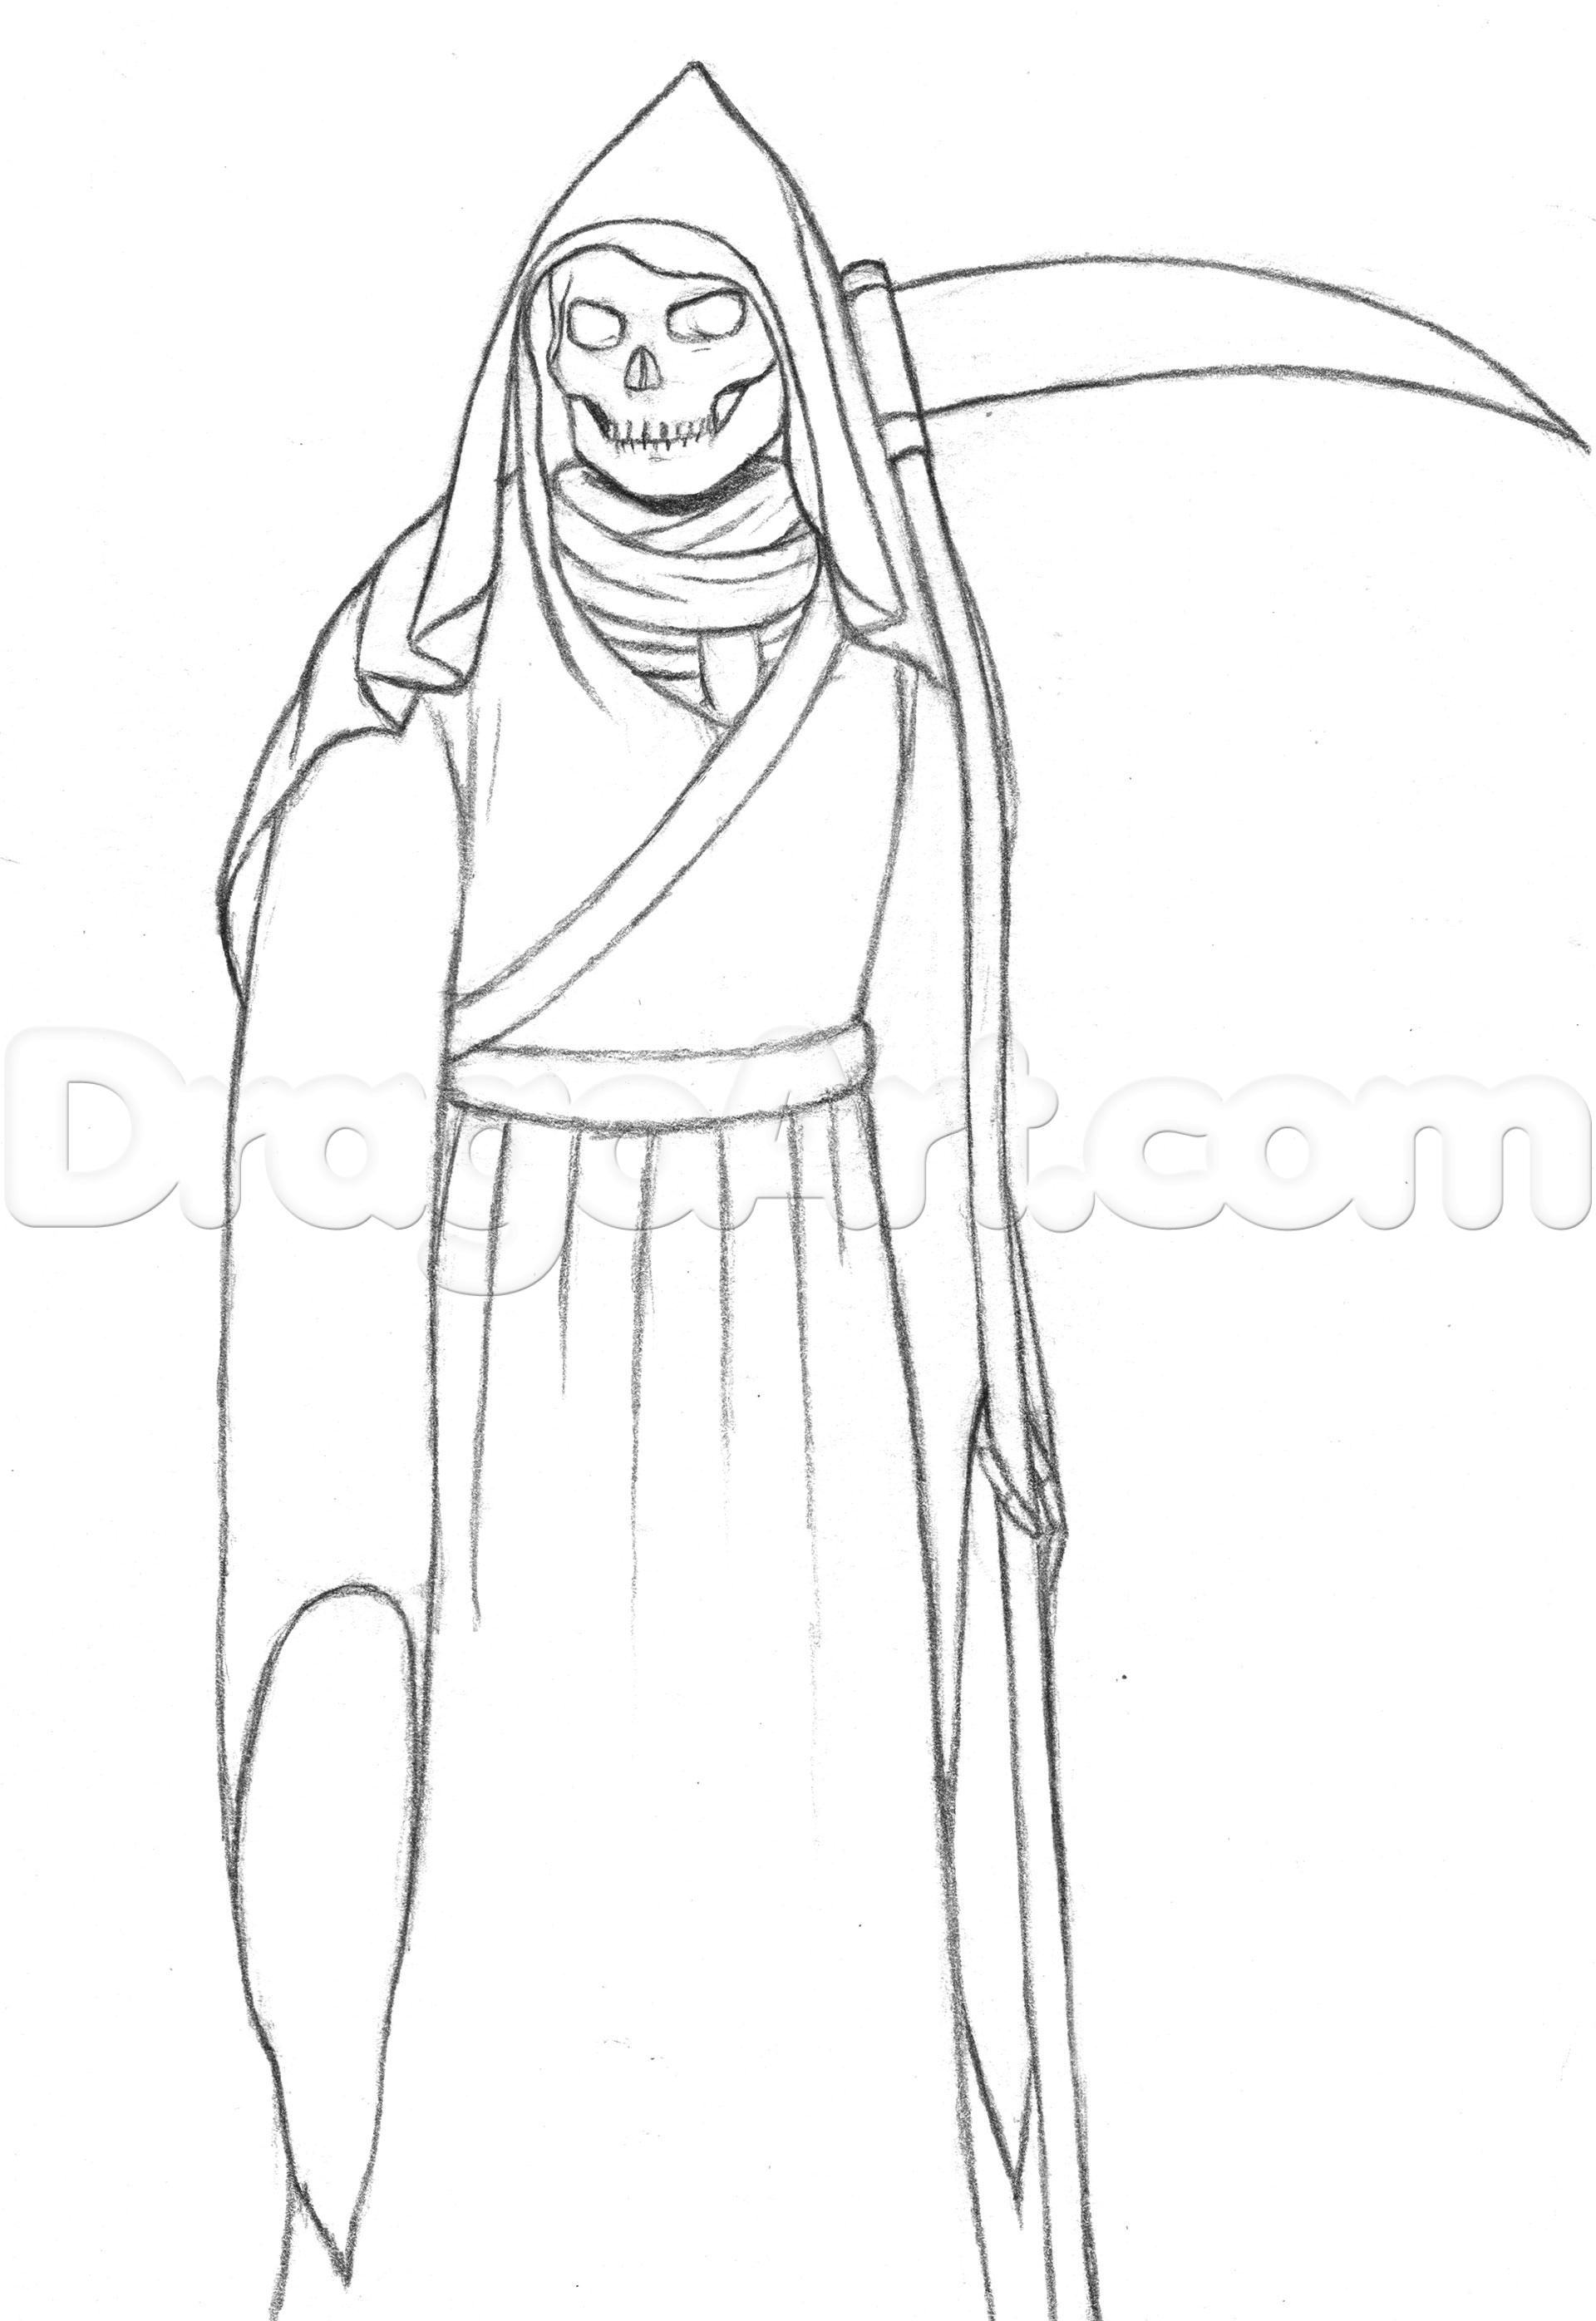 Drawn grim reaper robe To reaper the how 3